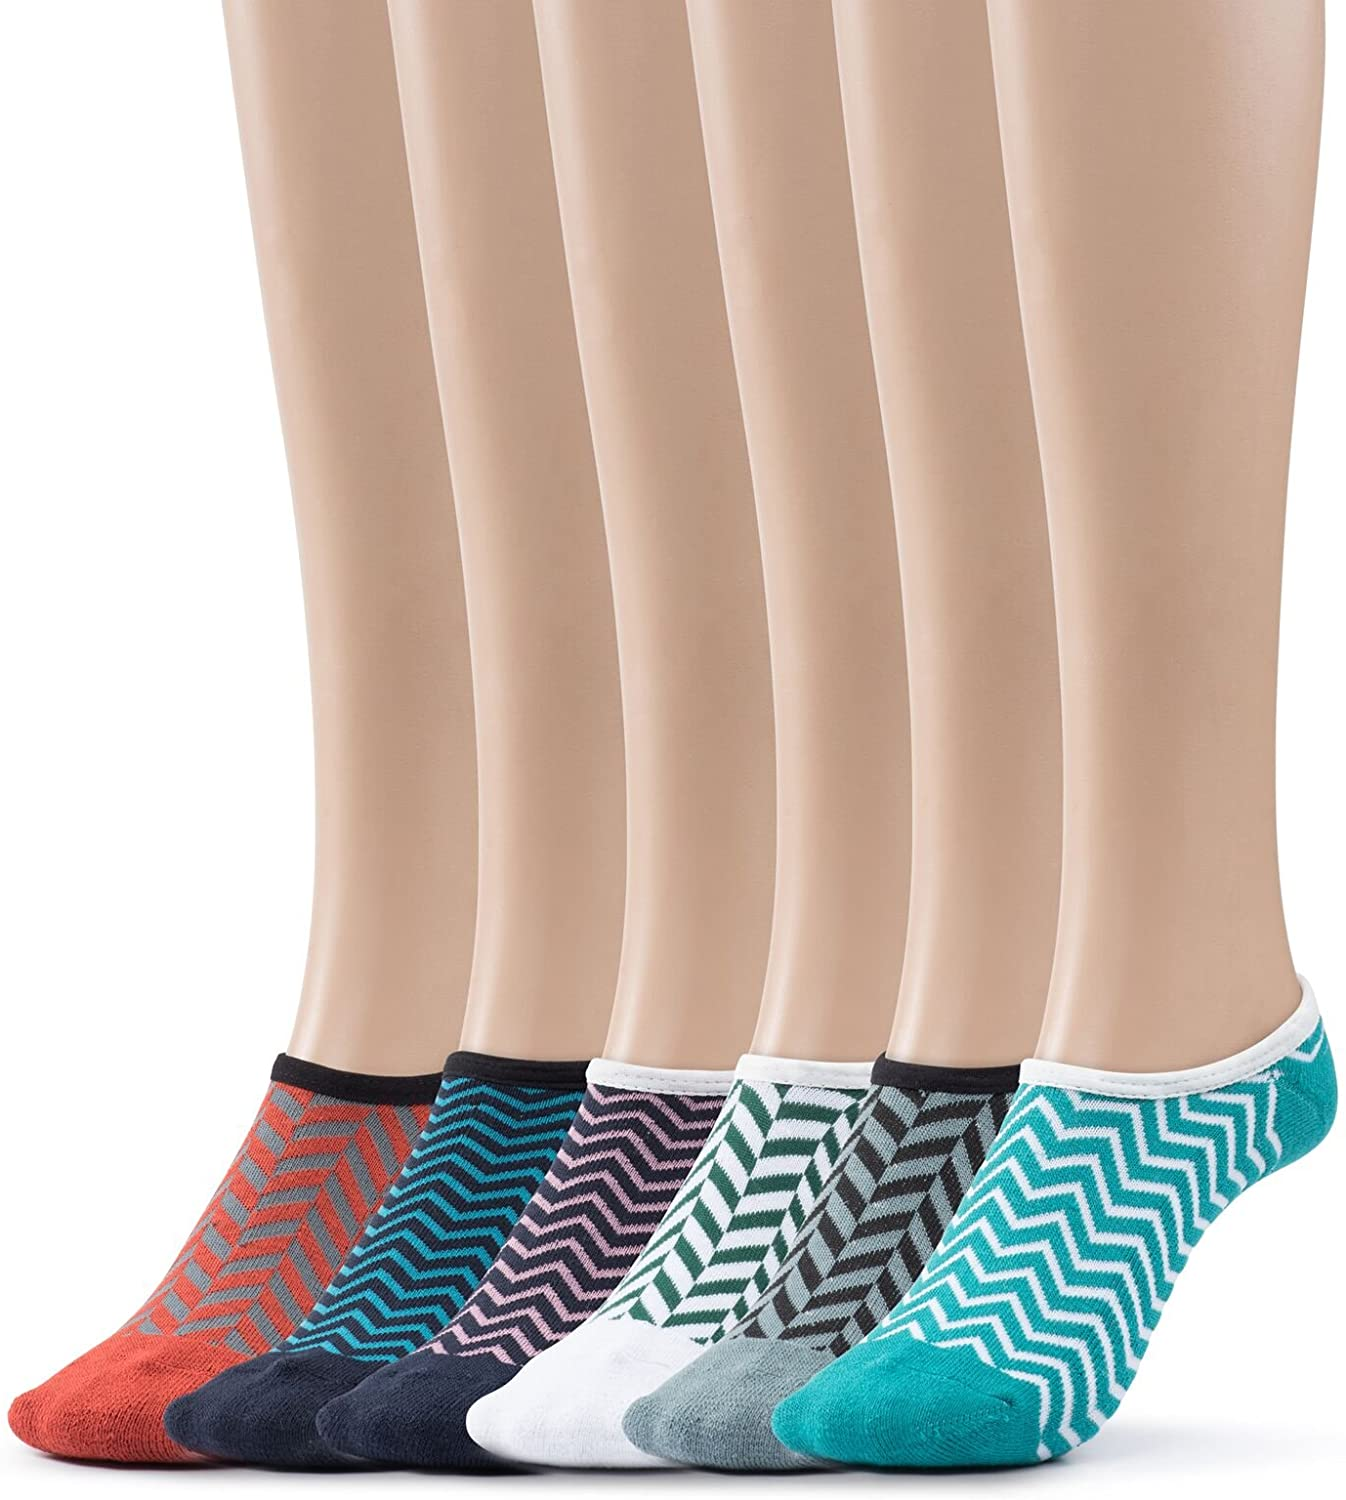 Women's Athletic No Show Socks Patterned Cushioned Foot Liners 6 Per Pack By Silky Toes